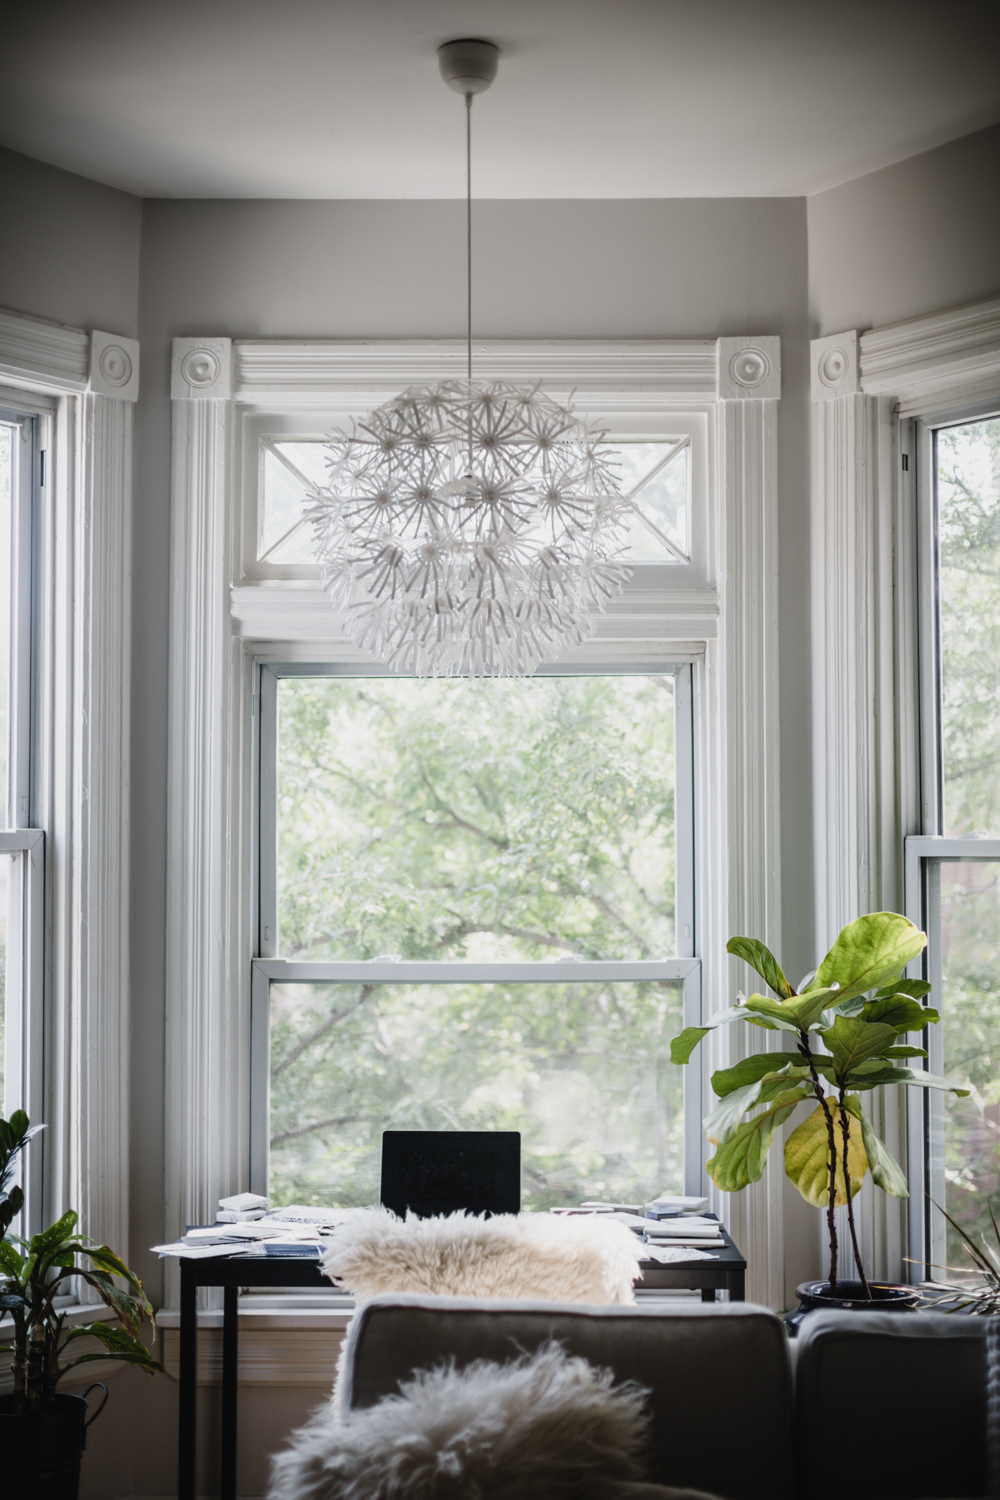 Workspace inspiration of interior designer Kira Obermeier for feature series Inspired Chicago